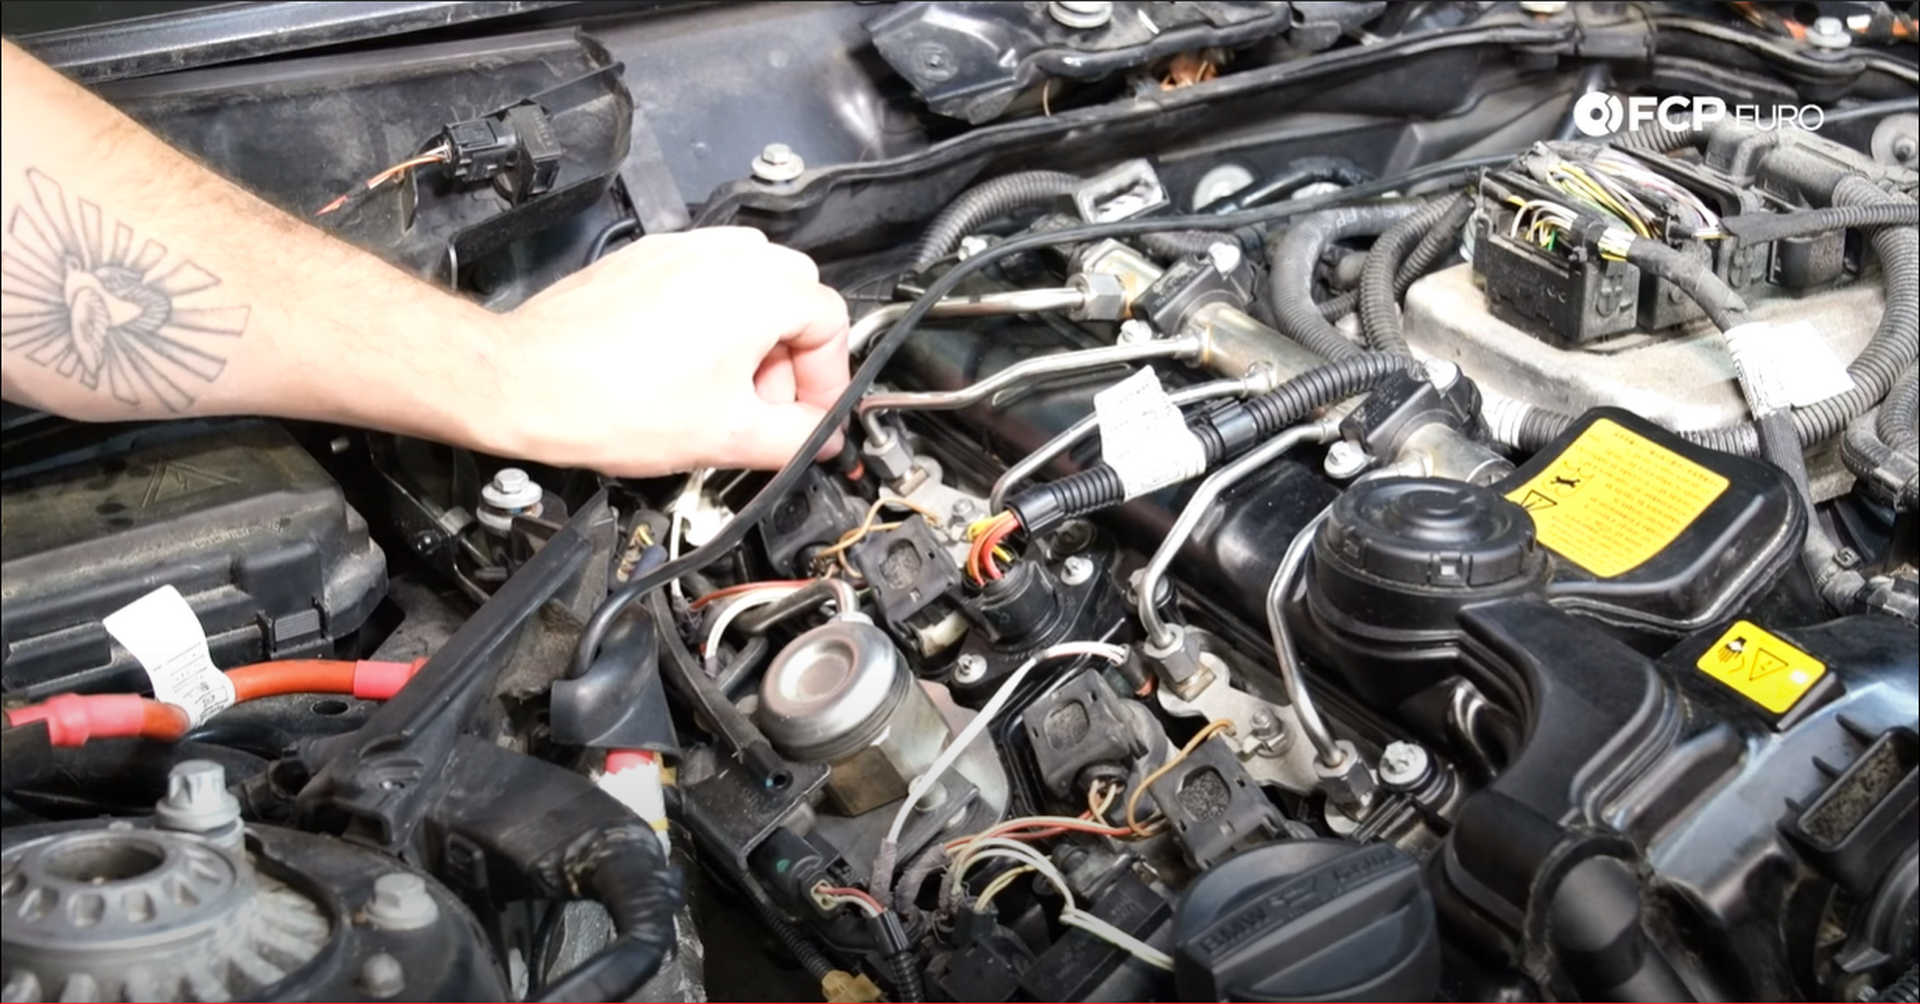 DIY BMW N20 Timing Chain plugging in the fuel injectors